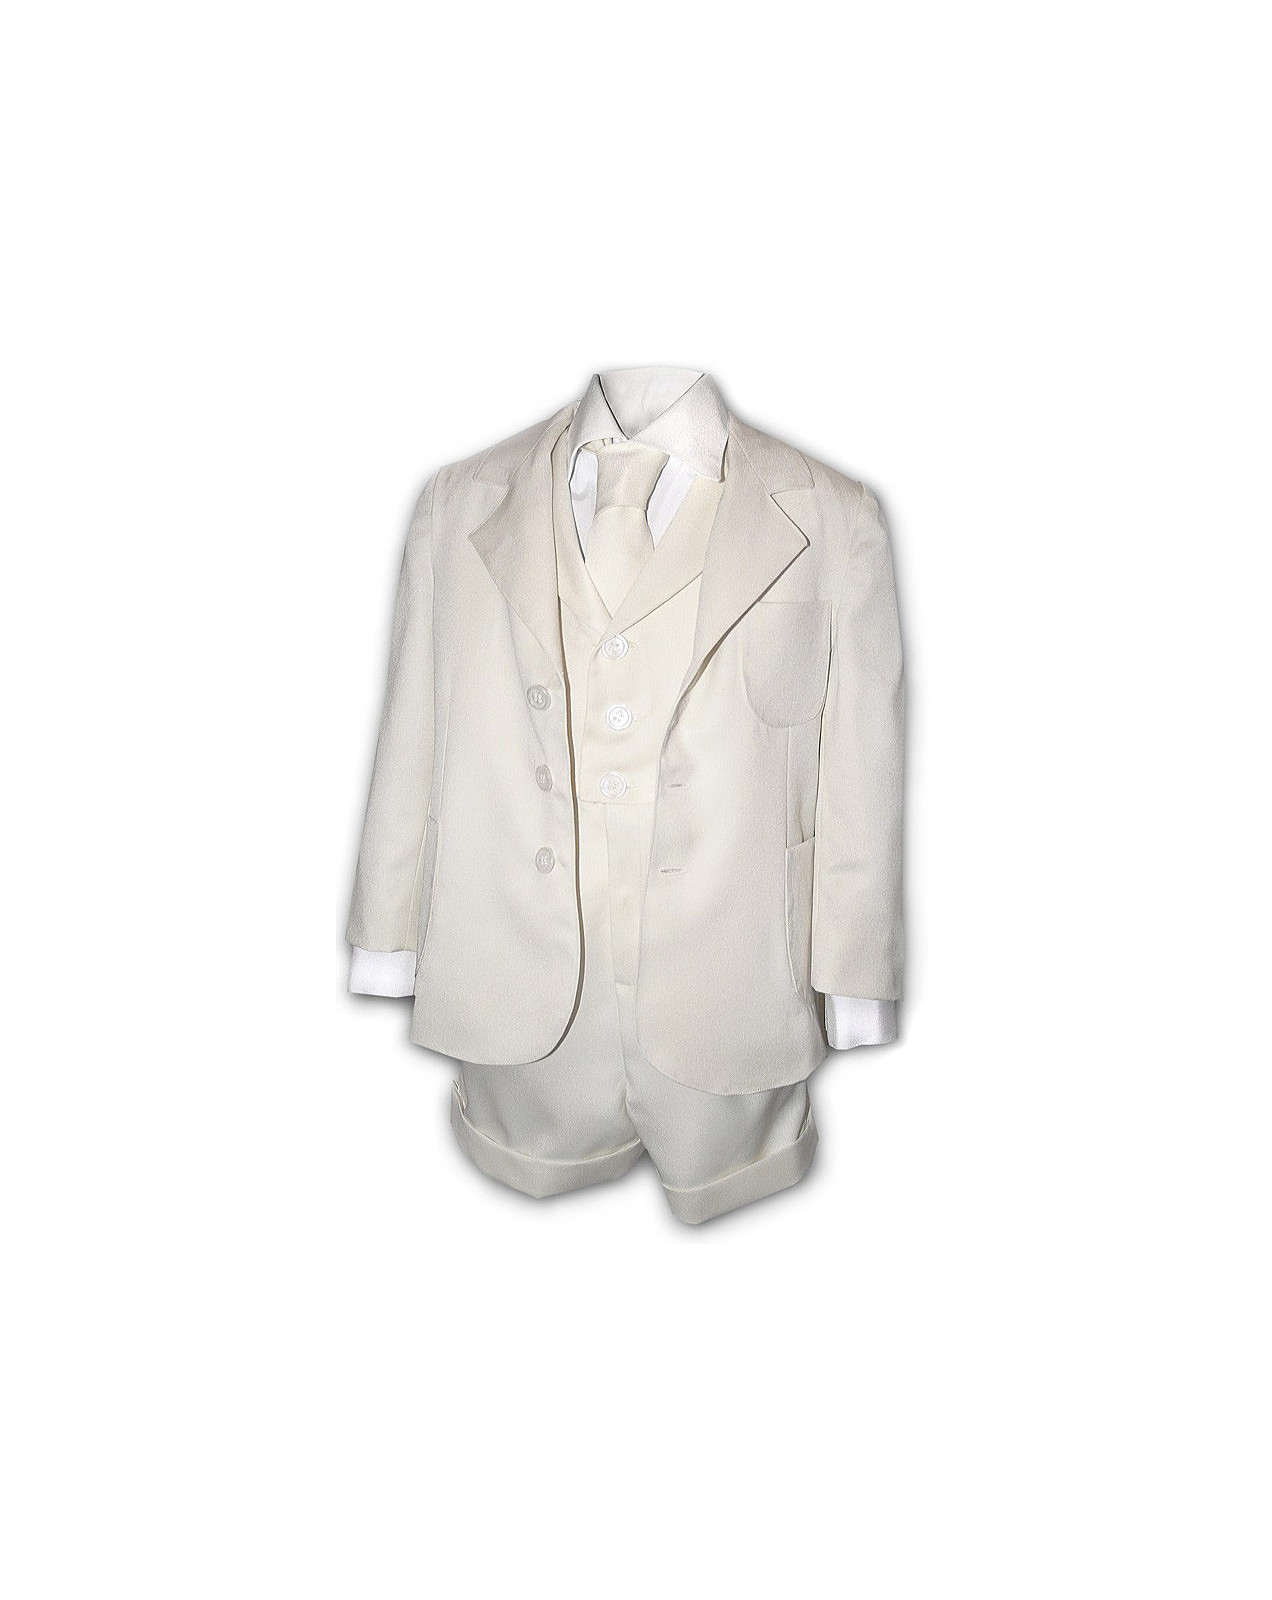 Jackson boy party outfit, jacket, pants, shirt and tie.